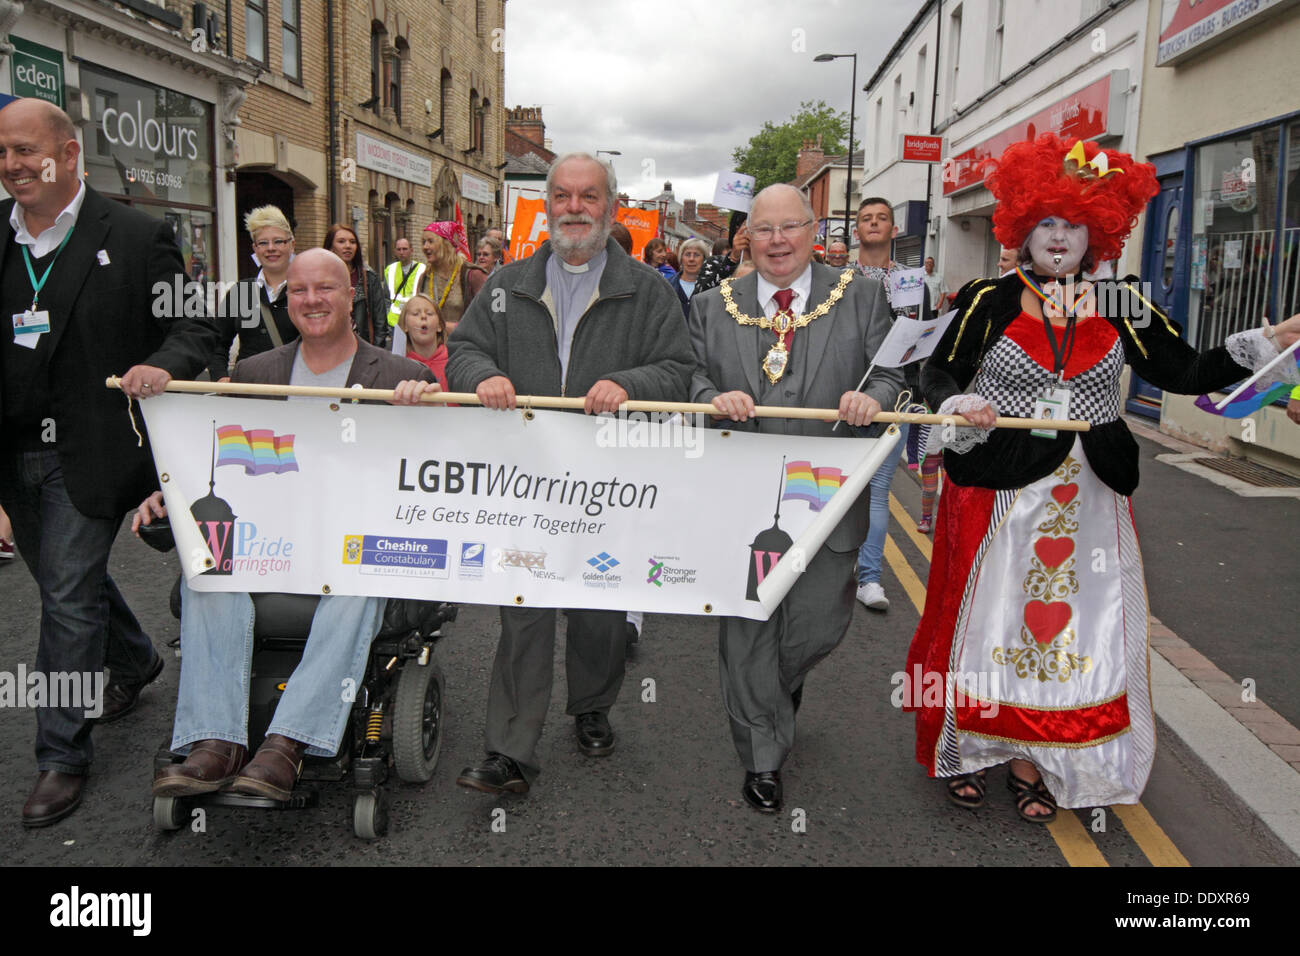 England,WA1,UK,GB,Great,britain,British,gay,lesbian,trans,transgender,LGBT,Bi,Bi-sexual,bisexual,people,men,women,marching,rights,WarringtonPride,march,marches,WBC,borough,council,unitary,local,authority,GGHT,golden,gates,housing,trust,events,celebrating,event,annual,yearly,flag,7th,seventh,gotonysmith,Warington,gayrights,Sep,Sept,Stonewall,town,demonstrate,demonstrators,demonstrator,Liberation,Front,GLF,gayness,gayboy,boy,boys,girls,girl,population,world,worldpride,Canal,St,street,rugby,player,players,team,cup,rugbyworldcup,07/09/2013,09/07/2013,Rylands,Palmyra,Sq,square,Bond,Bridge,WarringtonLGBT,LGBTWarrington,members,volunteers,stigma,services,service,HIV,aids,sexuality,sex,lgbtwarrington.co.uk,WA1,1JL,WA11JL,Vicar,130th,Lord,mayor,Councillor,Peter,Carey,and,Clair,Haslam,banner,walk,down,Rylands,Street,Buy Pictures of,Buy Images Of